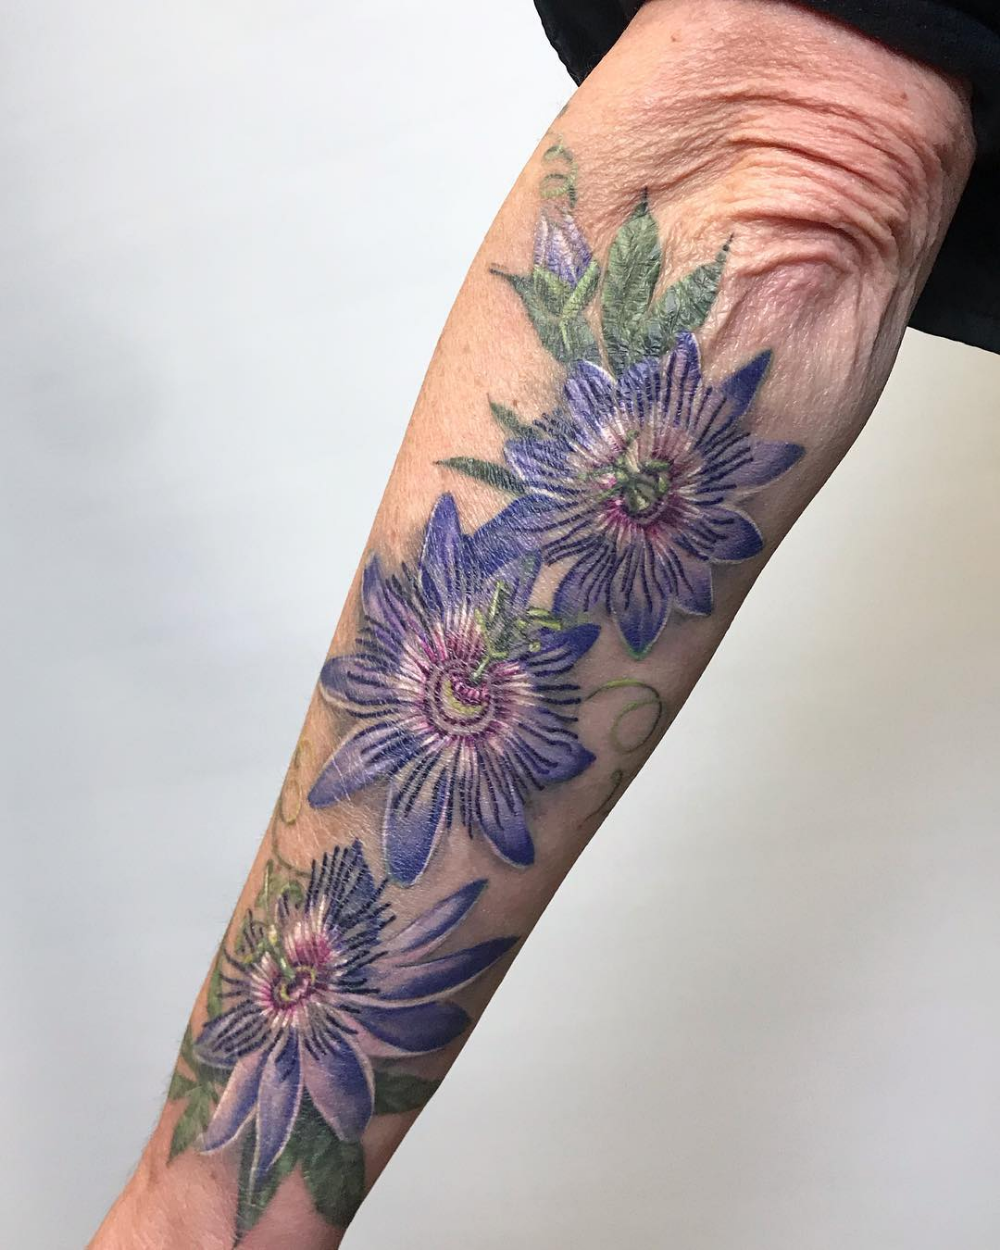 Passion Flower Tattoos Google Search Tattoos Flower Tattoos Half Sleeve Tattoo